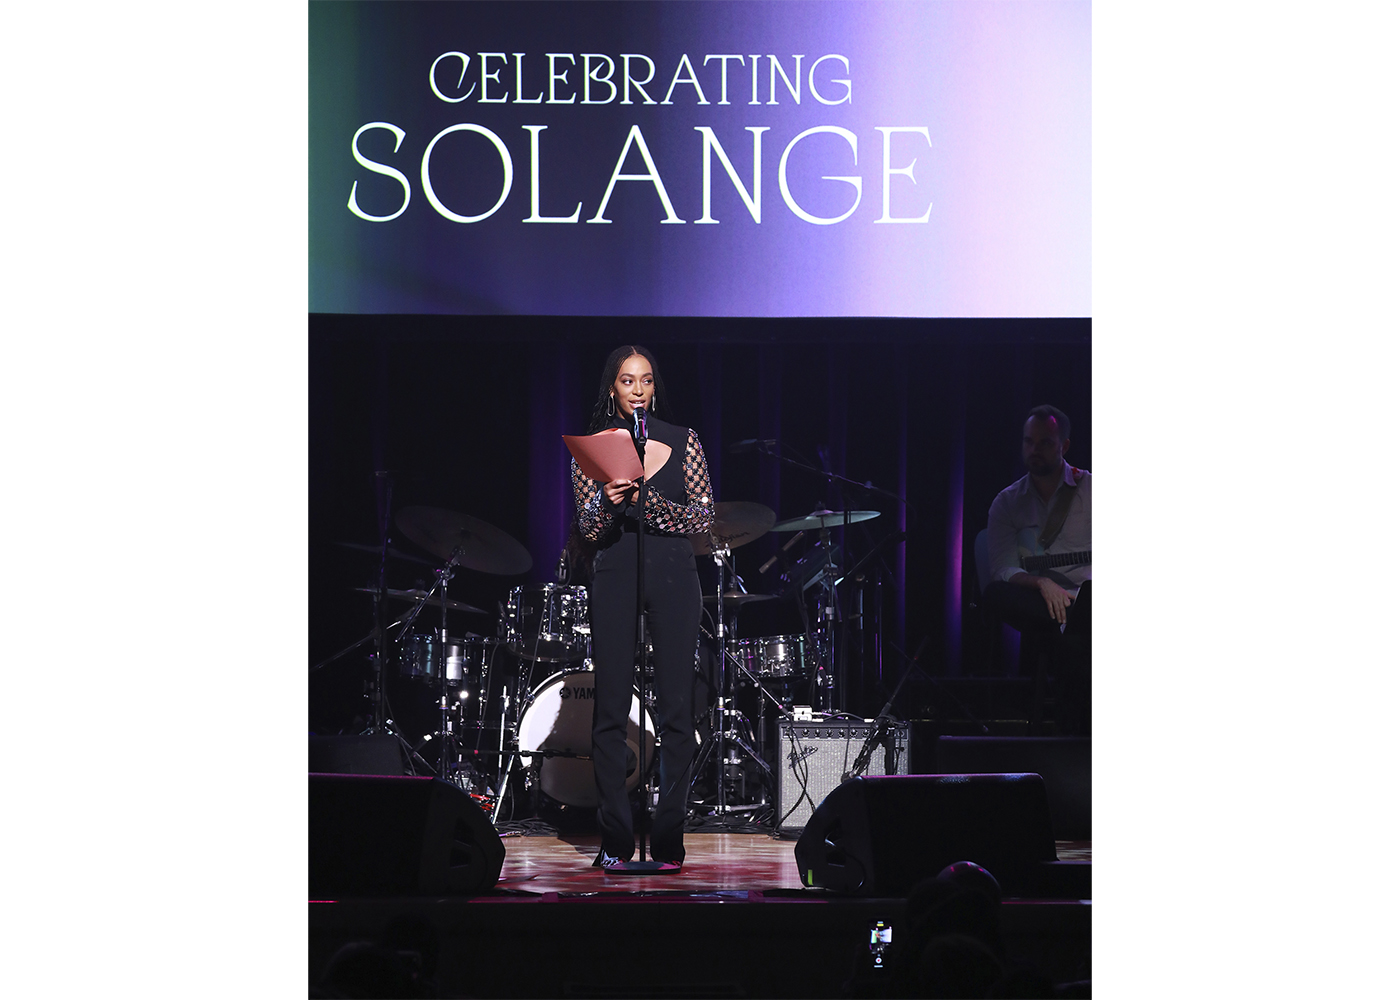 Solange Knowles speaks onstage at the Lena Horne Prize Event Honoring Solange Knowles Presented by Salesforce at the Town Hall on February 28, 2020, in New York City (photo by Jason Mendez/Getty Images for the Town Hall)